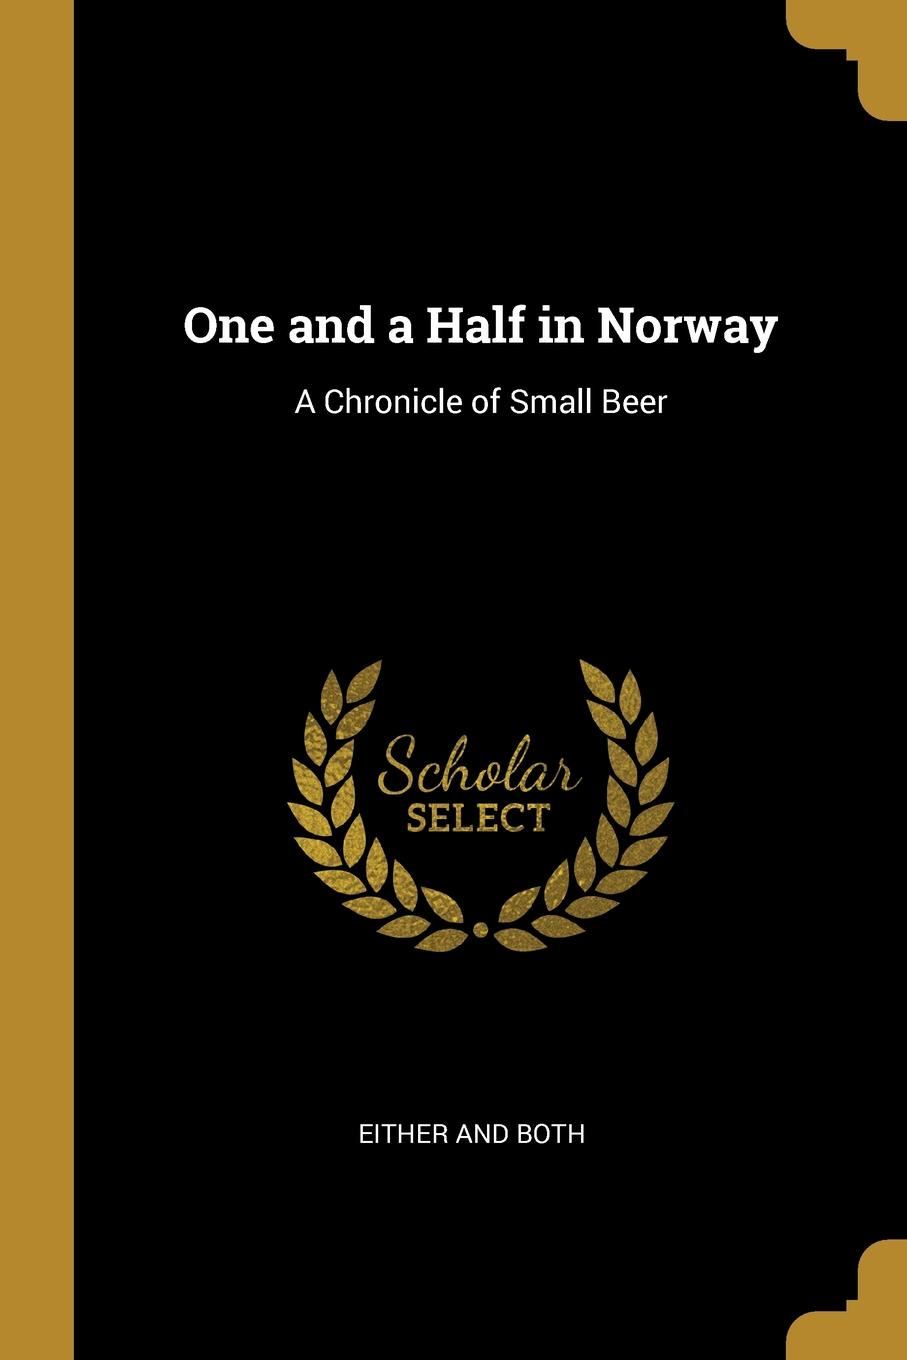 Either and Both One and a Half in Norway. A Chronicle of Small Beer